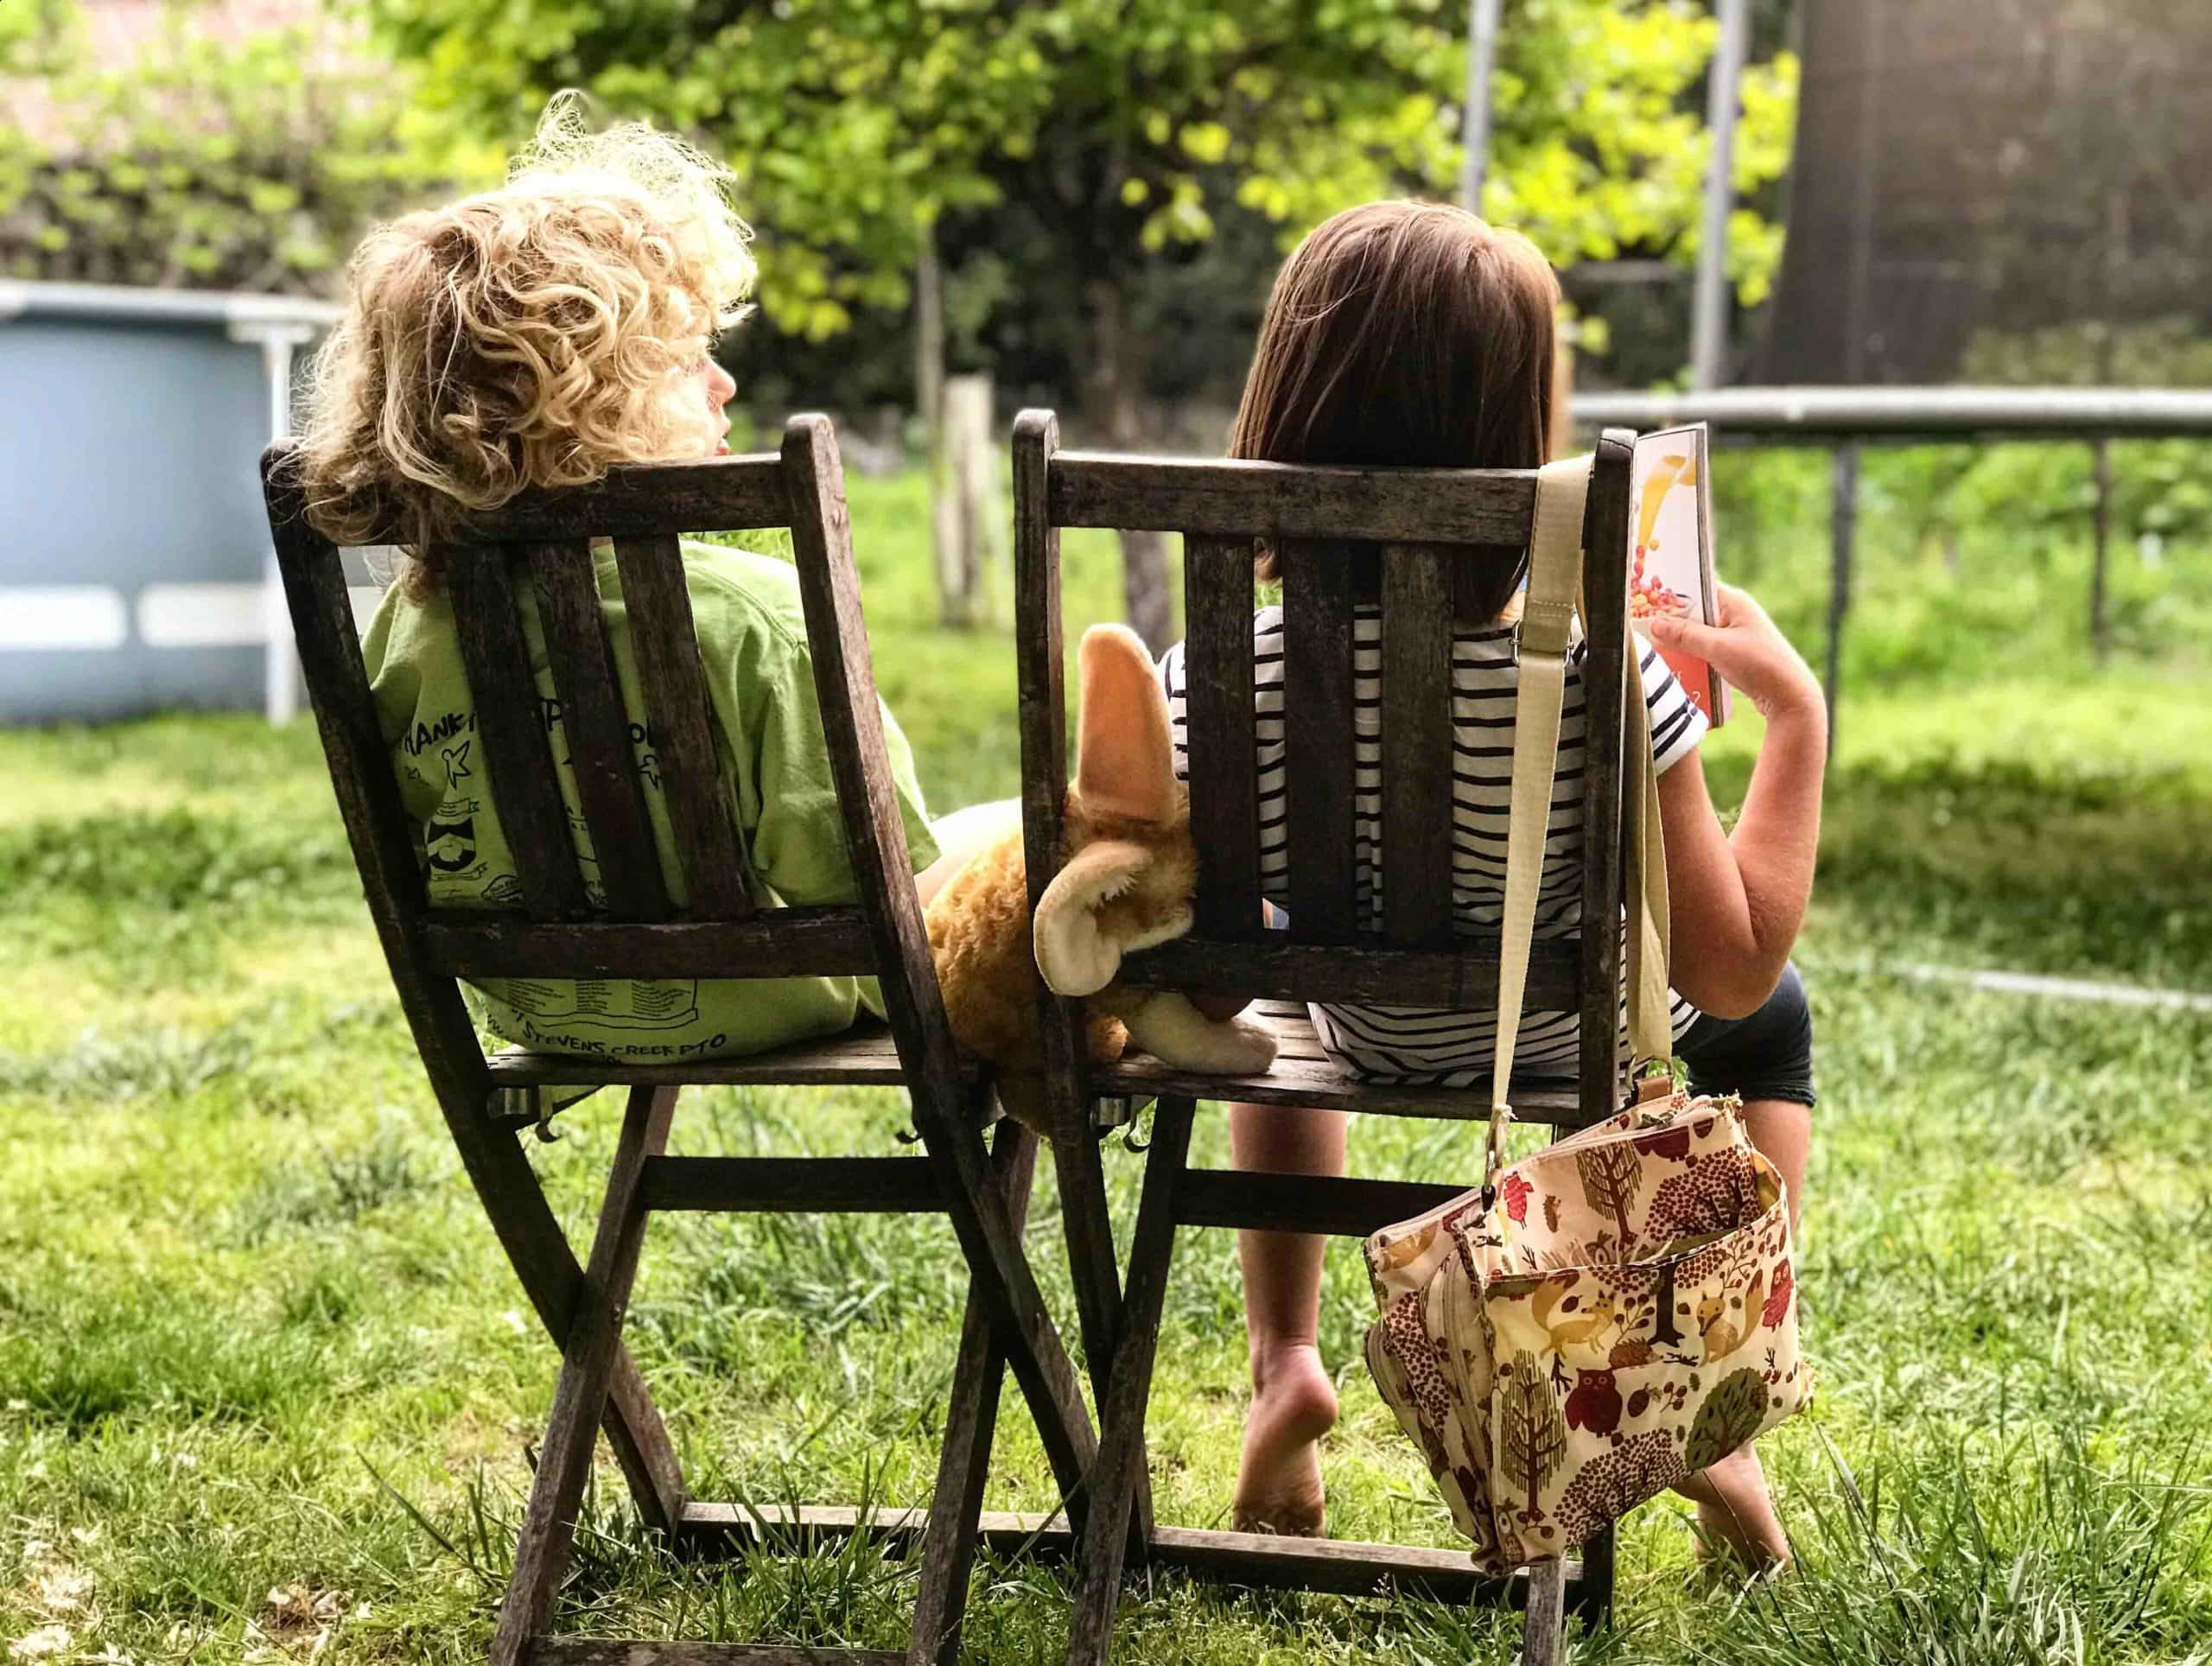 Two children sit on chairs next to each other in the garden. The young boy is talking to the young girl who is reading a book.